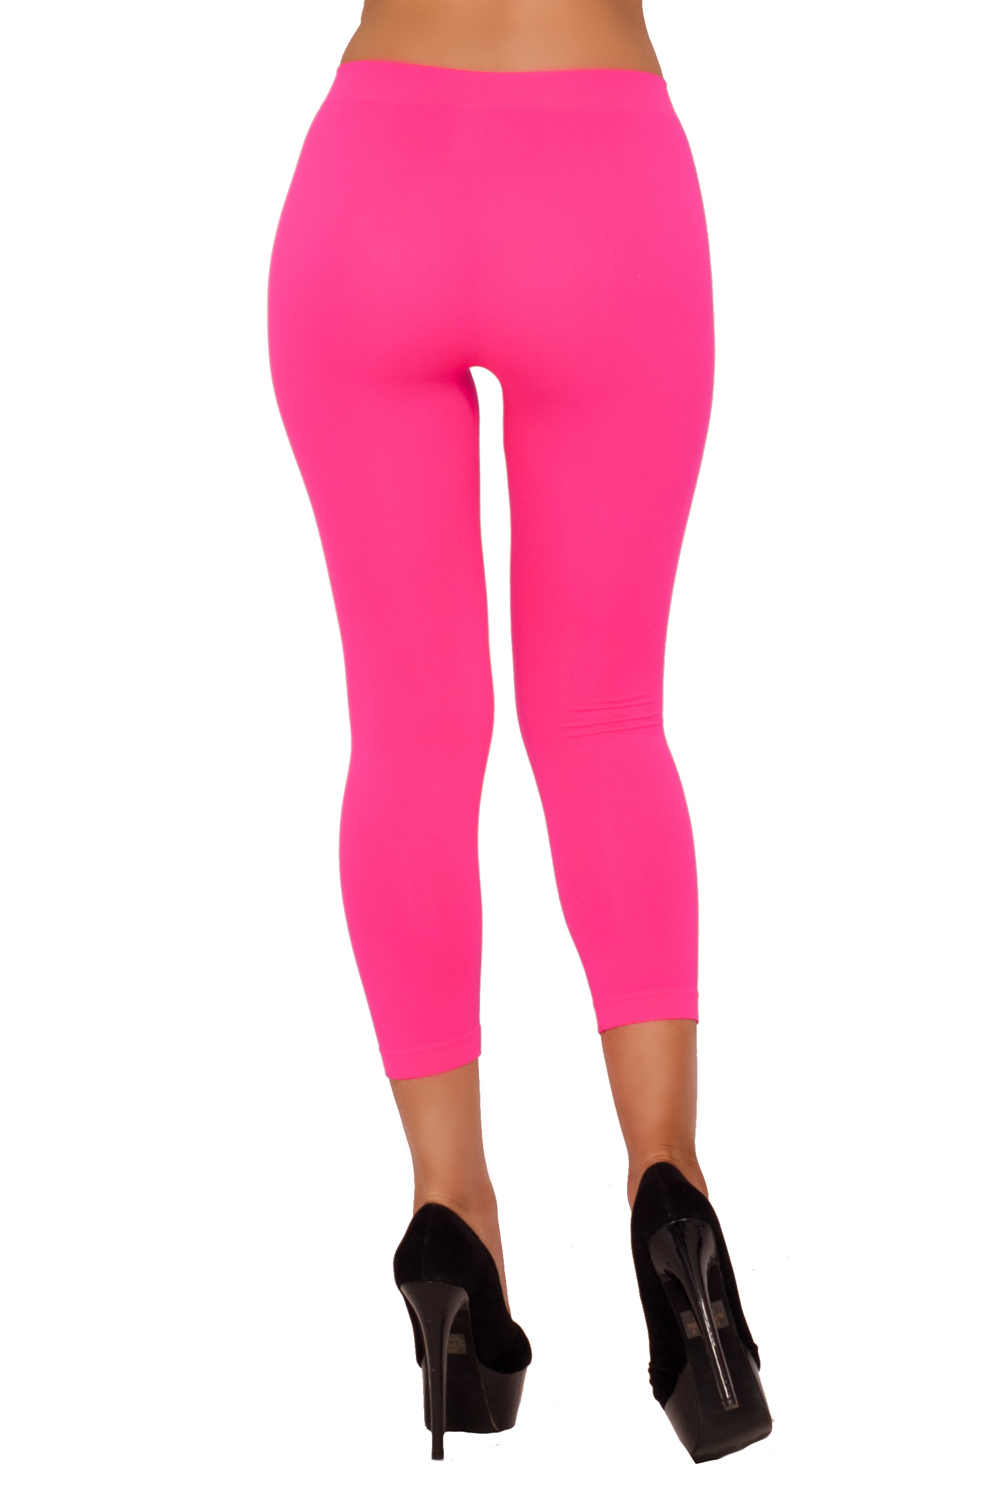 Gym LeggingS Tights Low-rise Capri Yoga Workout Active ...